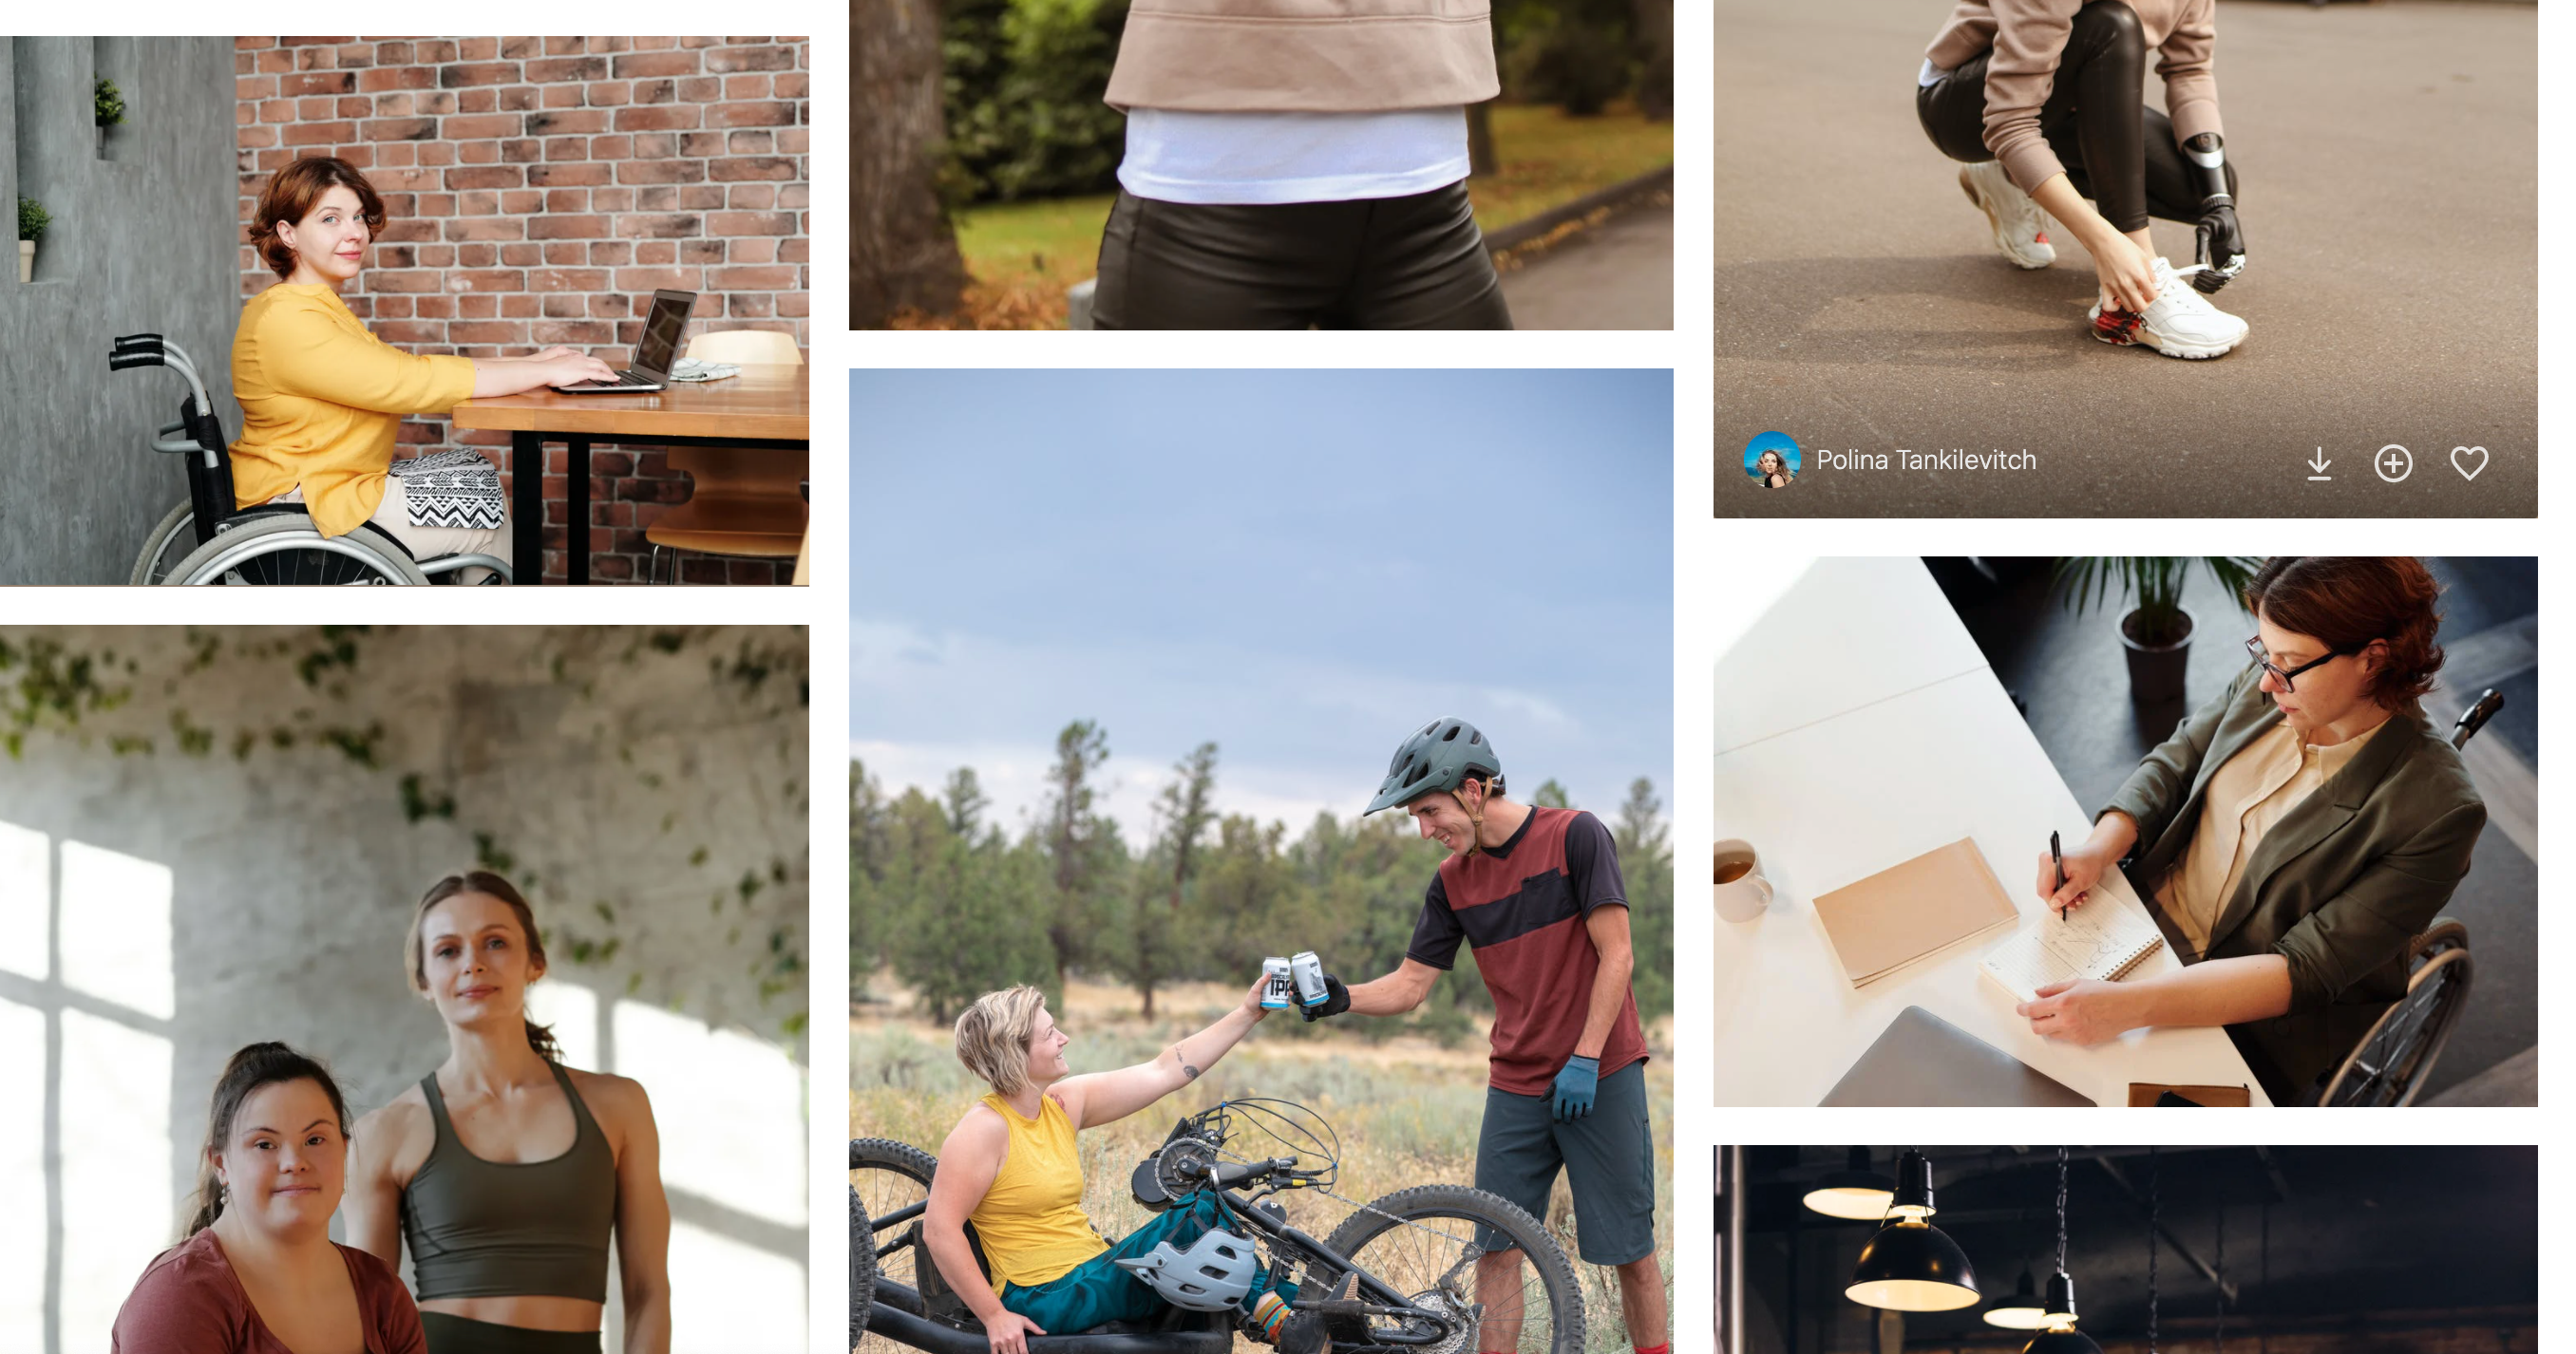 Example of the stock photography selection from nexels.com showing several people with disabilities in an active lifestyle